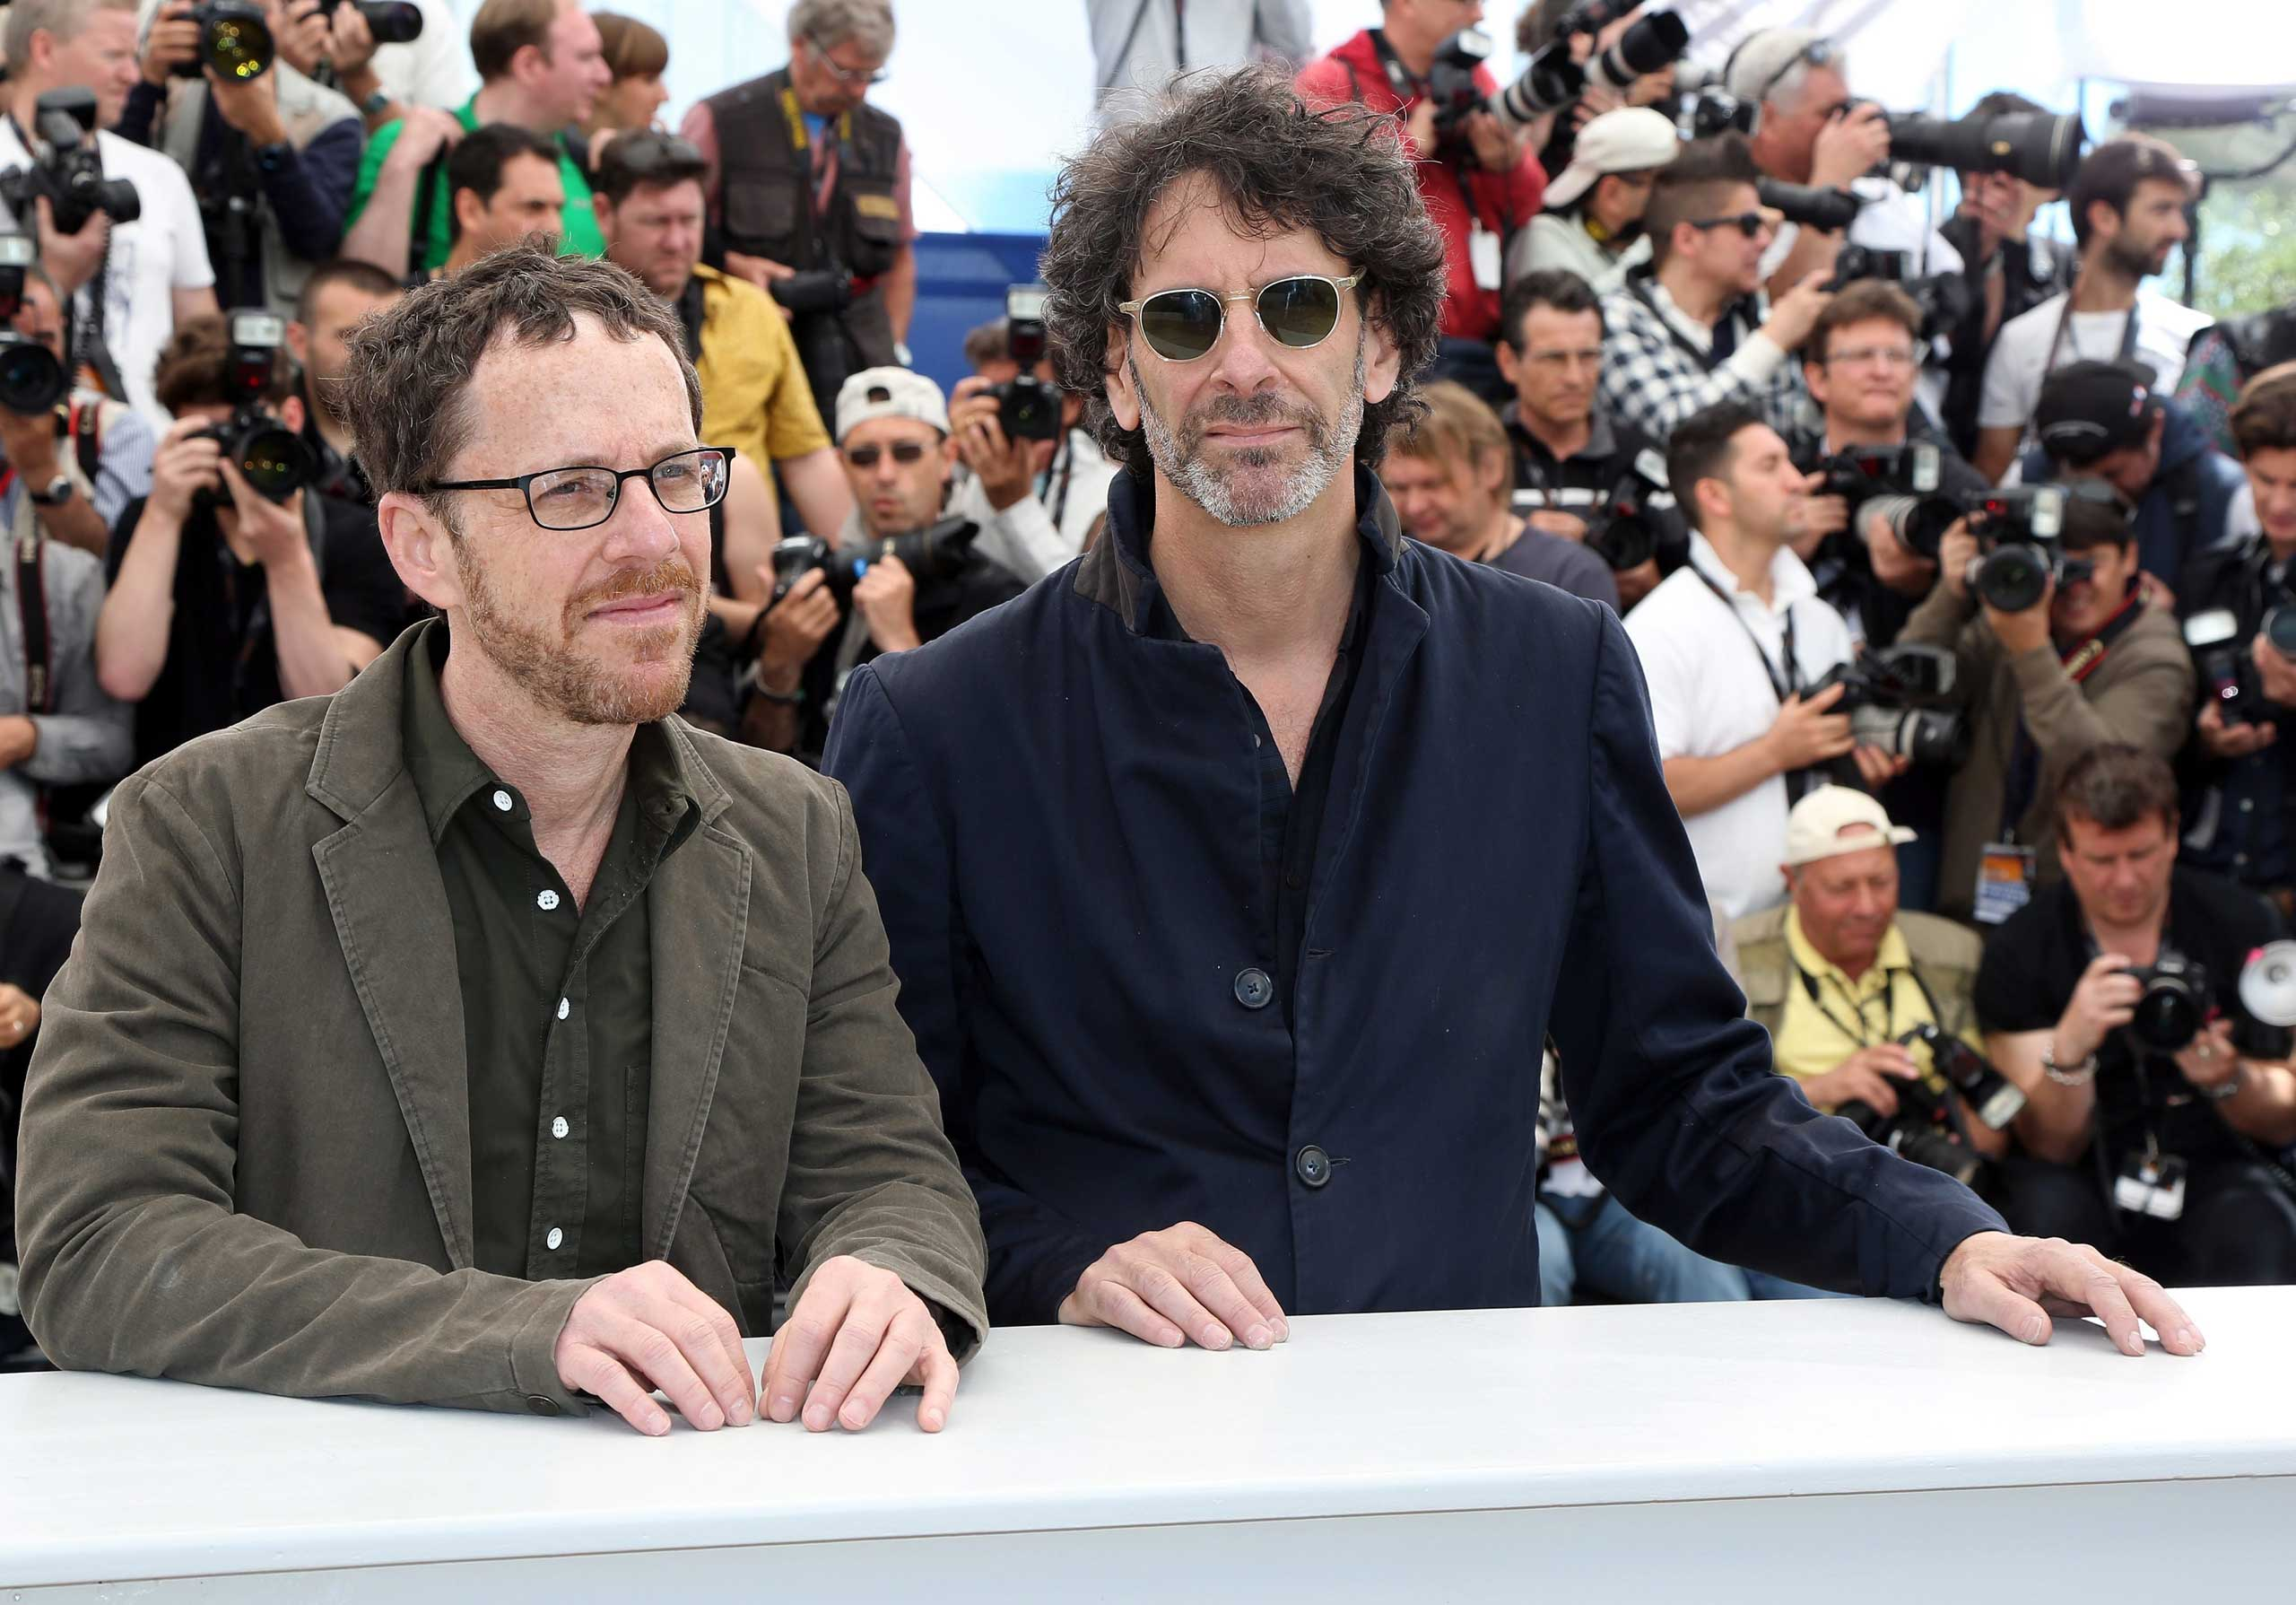 Directors Ethan Cohen (L) and Joel Cohen (R) during the photocall for 'Inside Llewyn Davis' at the 66th annual Cannes Film Festival in Cannes, France, May 19, 2013.